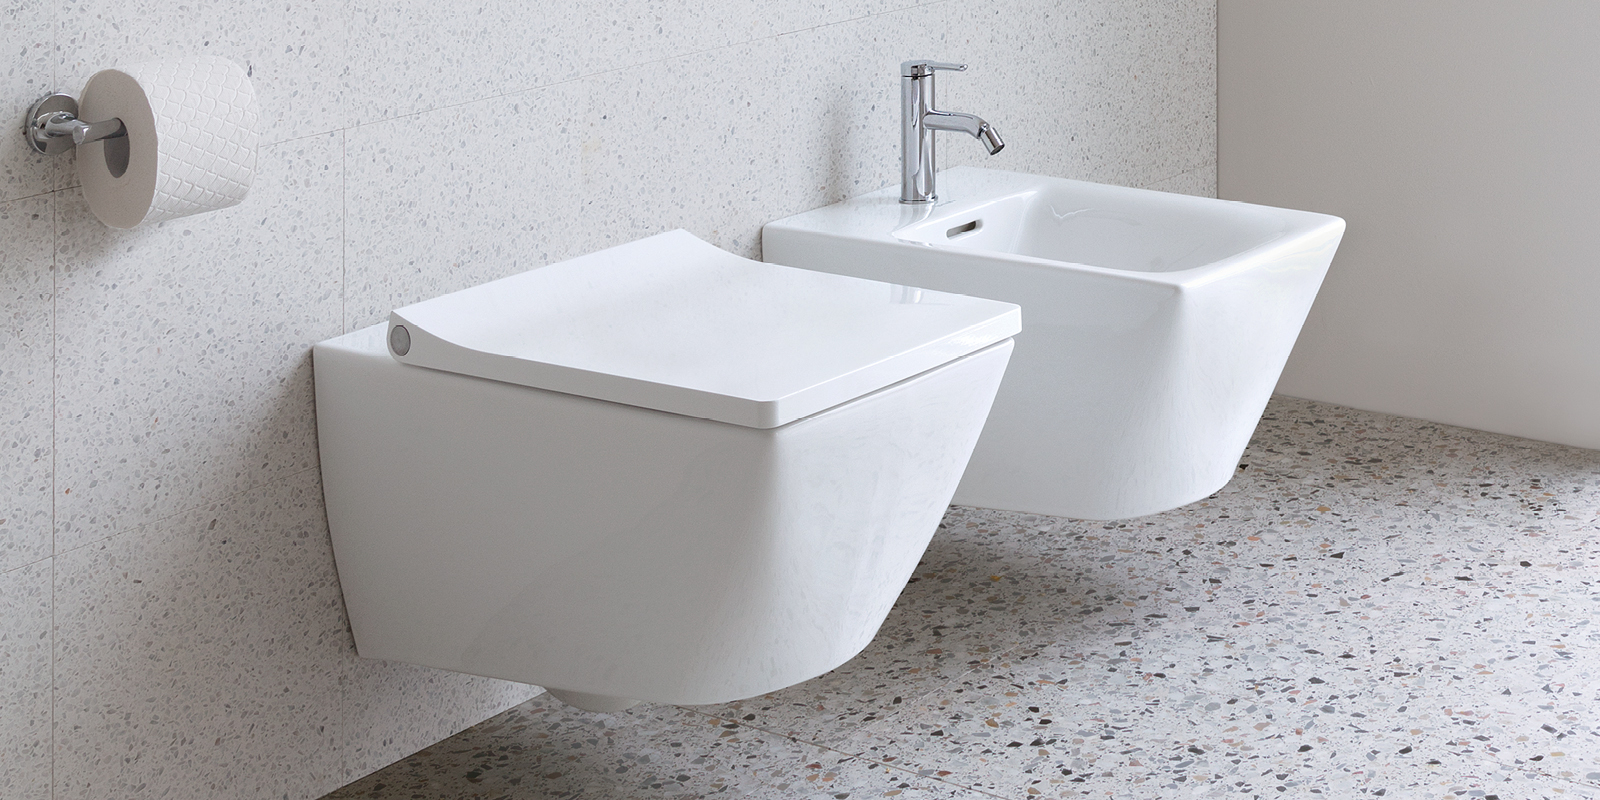 Duravit Viu WC and bidet at xTWOstore